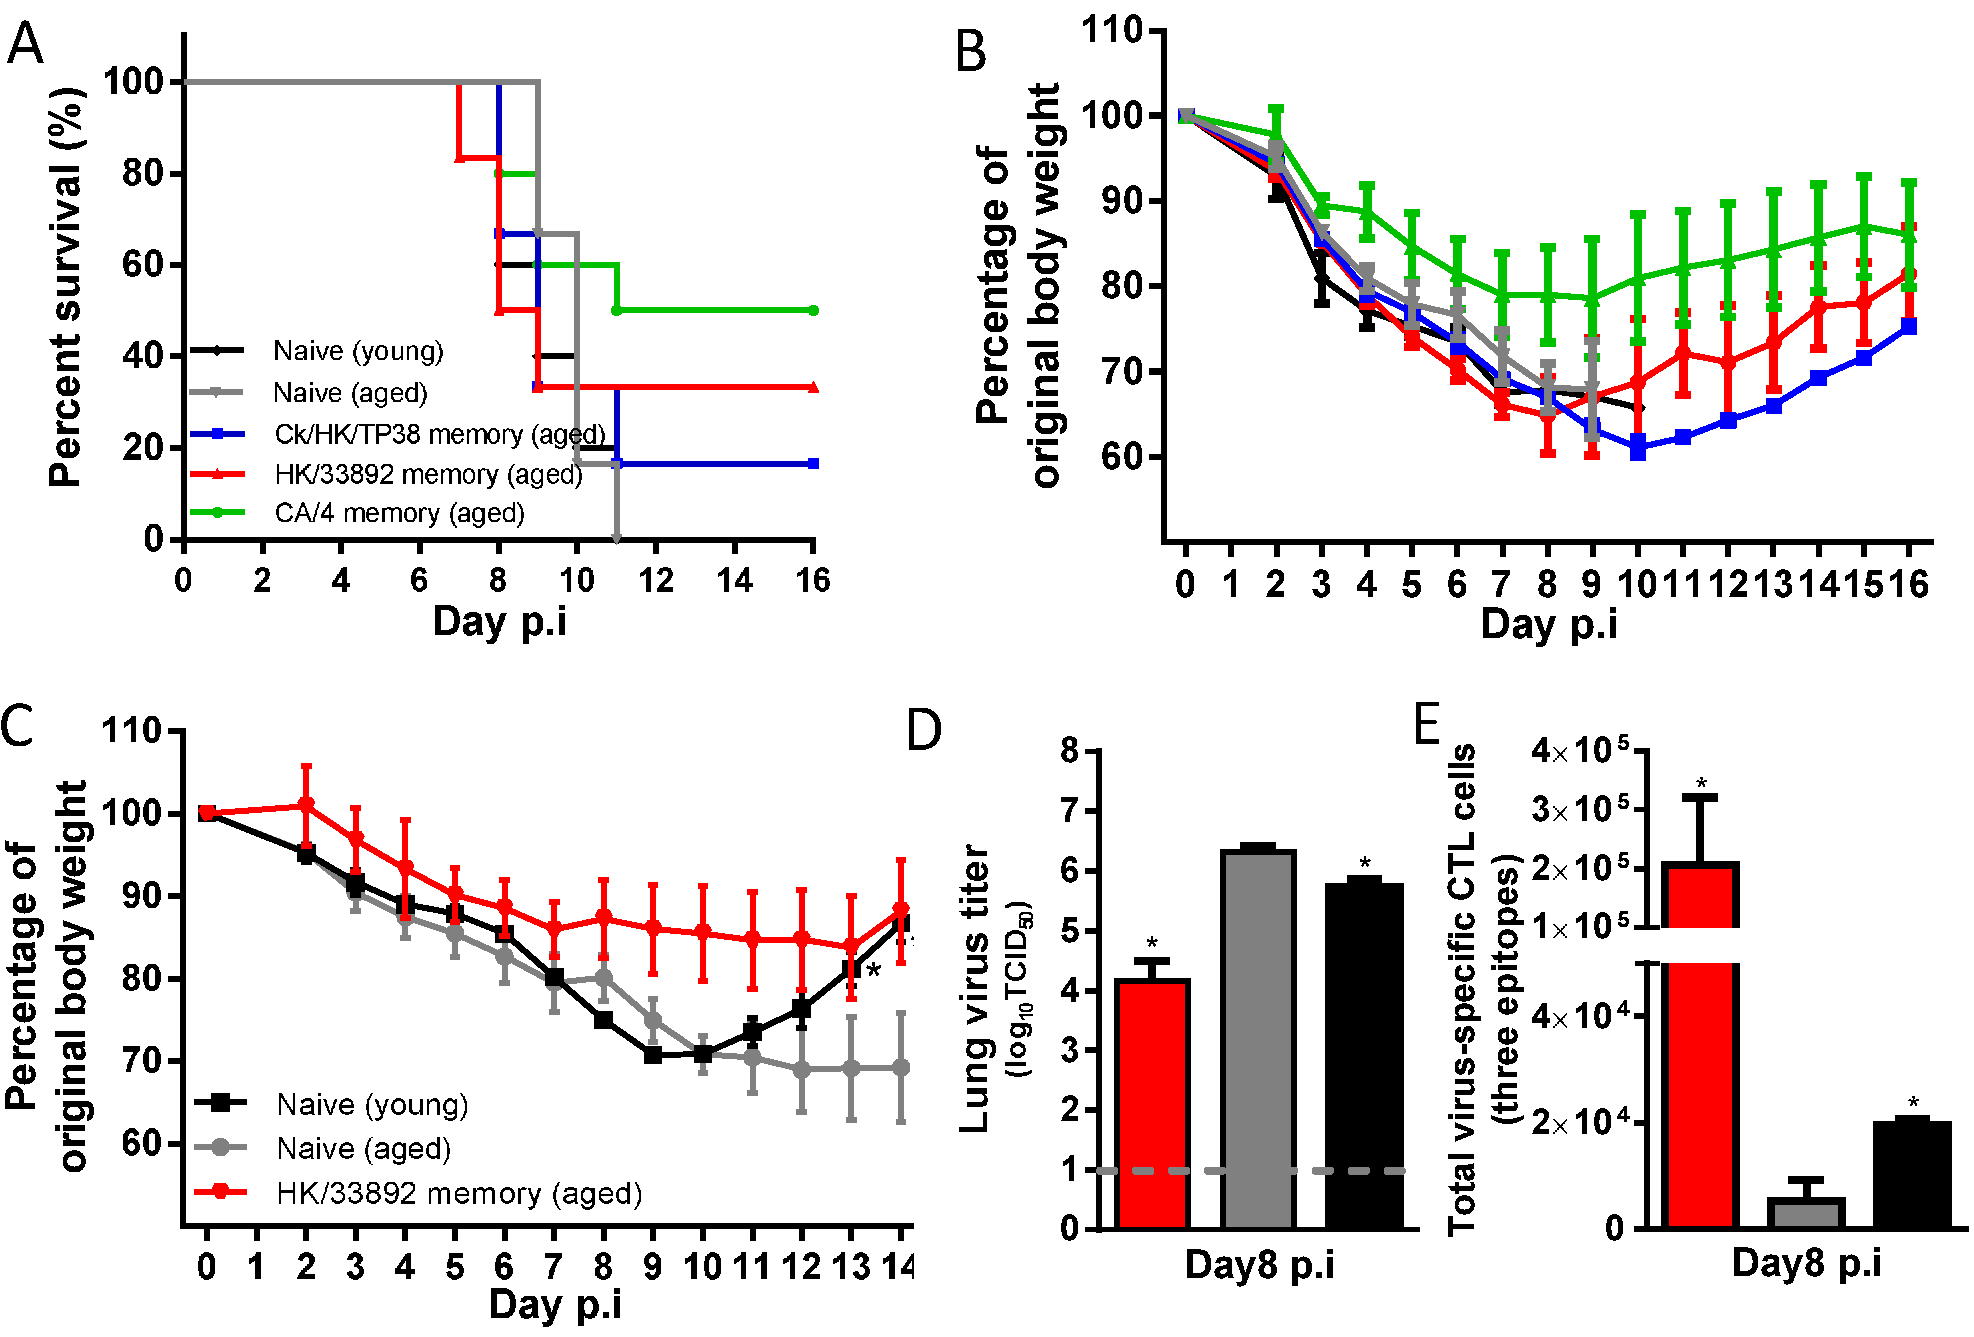 The disease course in young or aged naïve mice, or primed (with H9N2 or H1N1 virus) aged mice following H7N9 challenge.